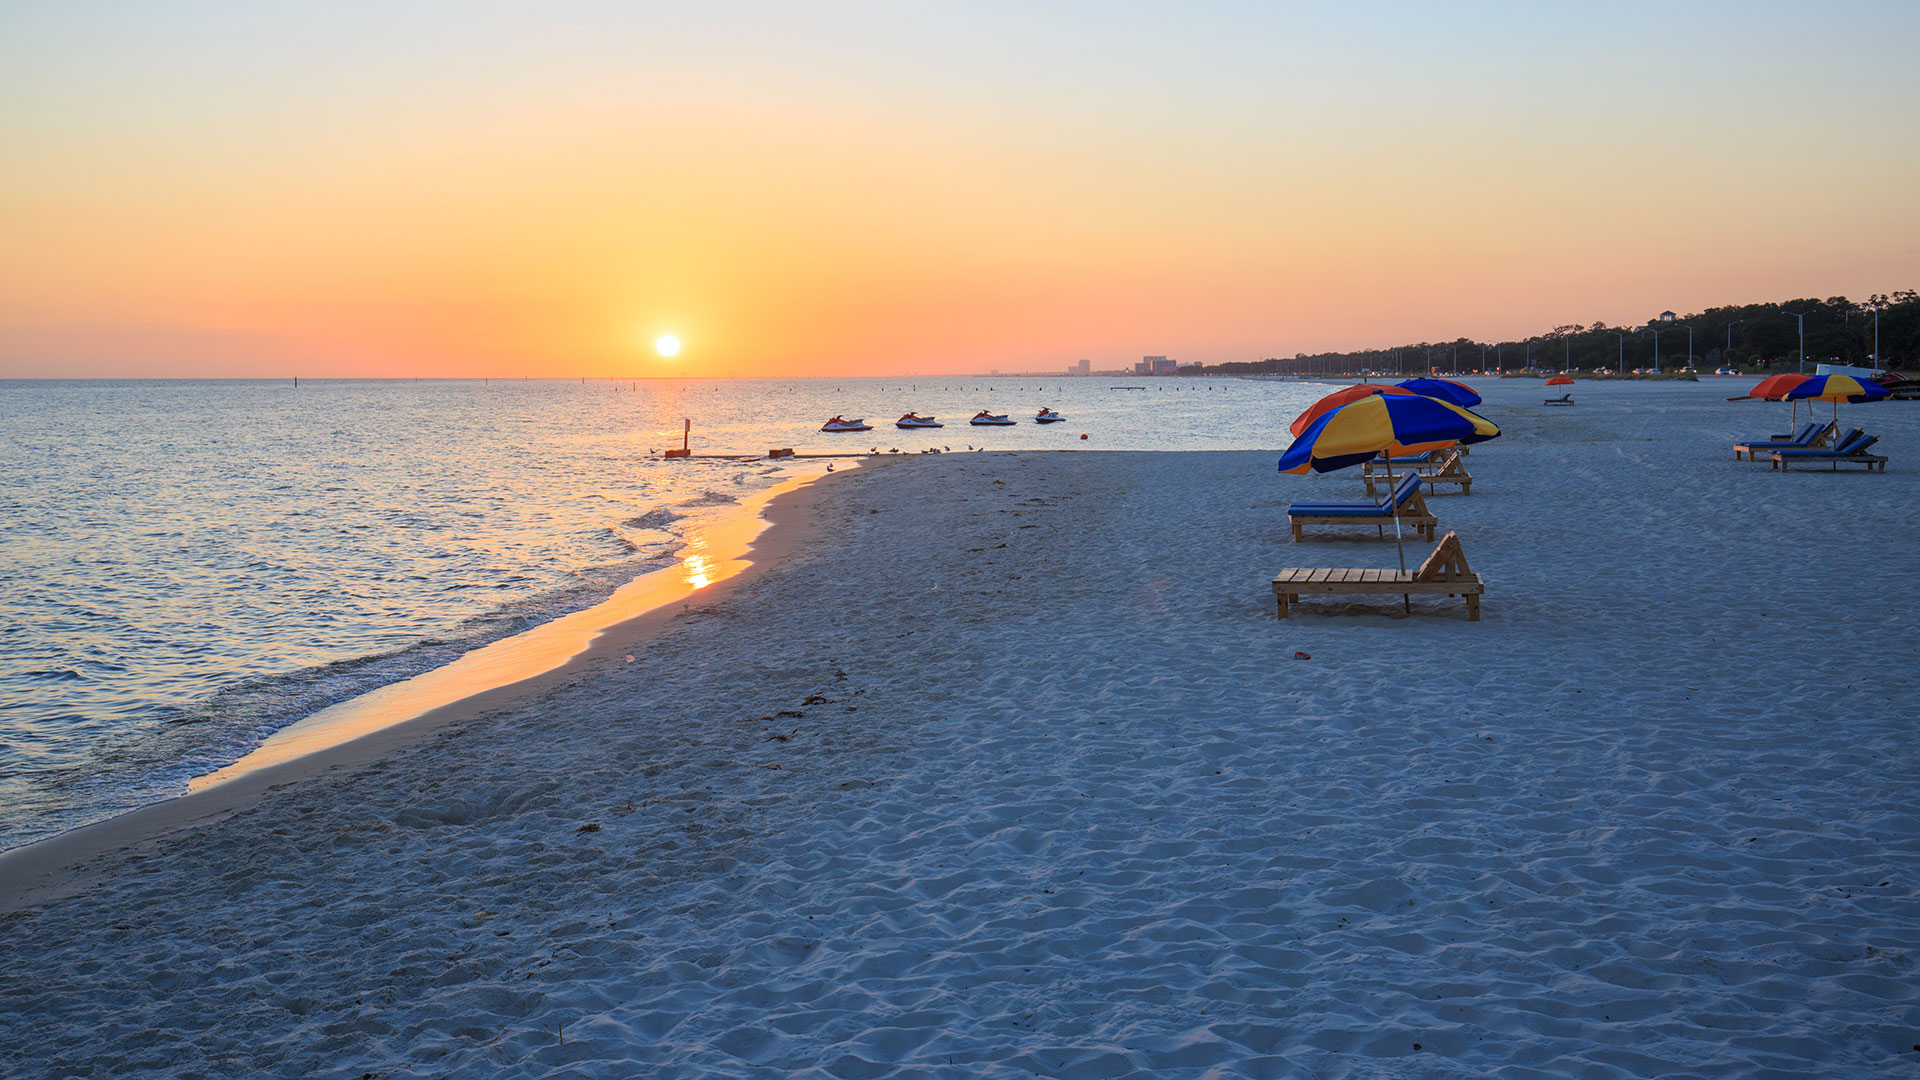 Biloxi beach at sunset; Courtesy of All Stock Photos/Shutterstock.com